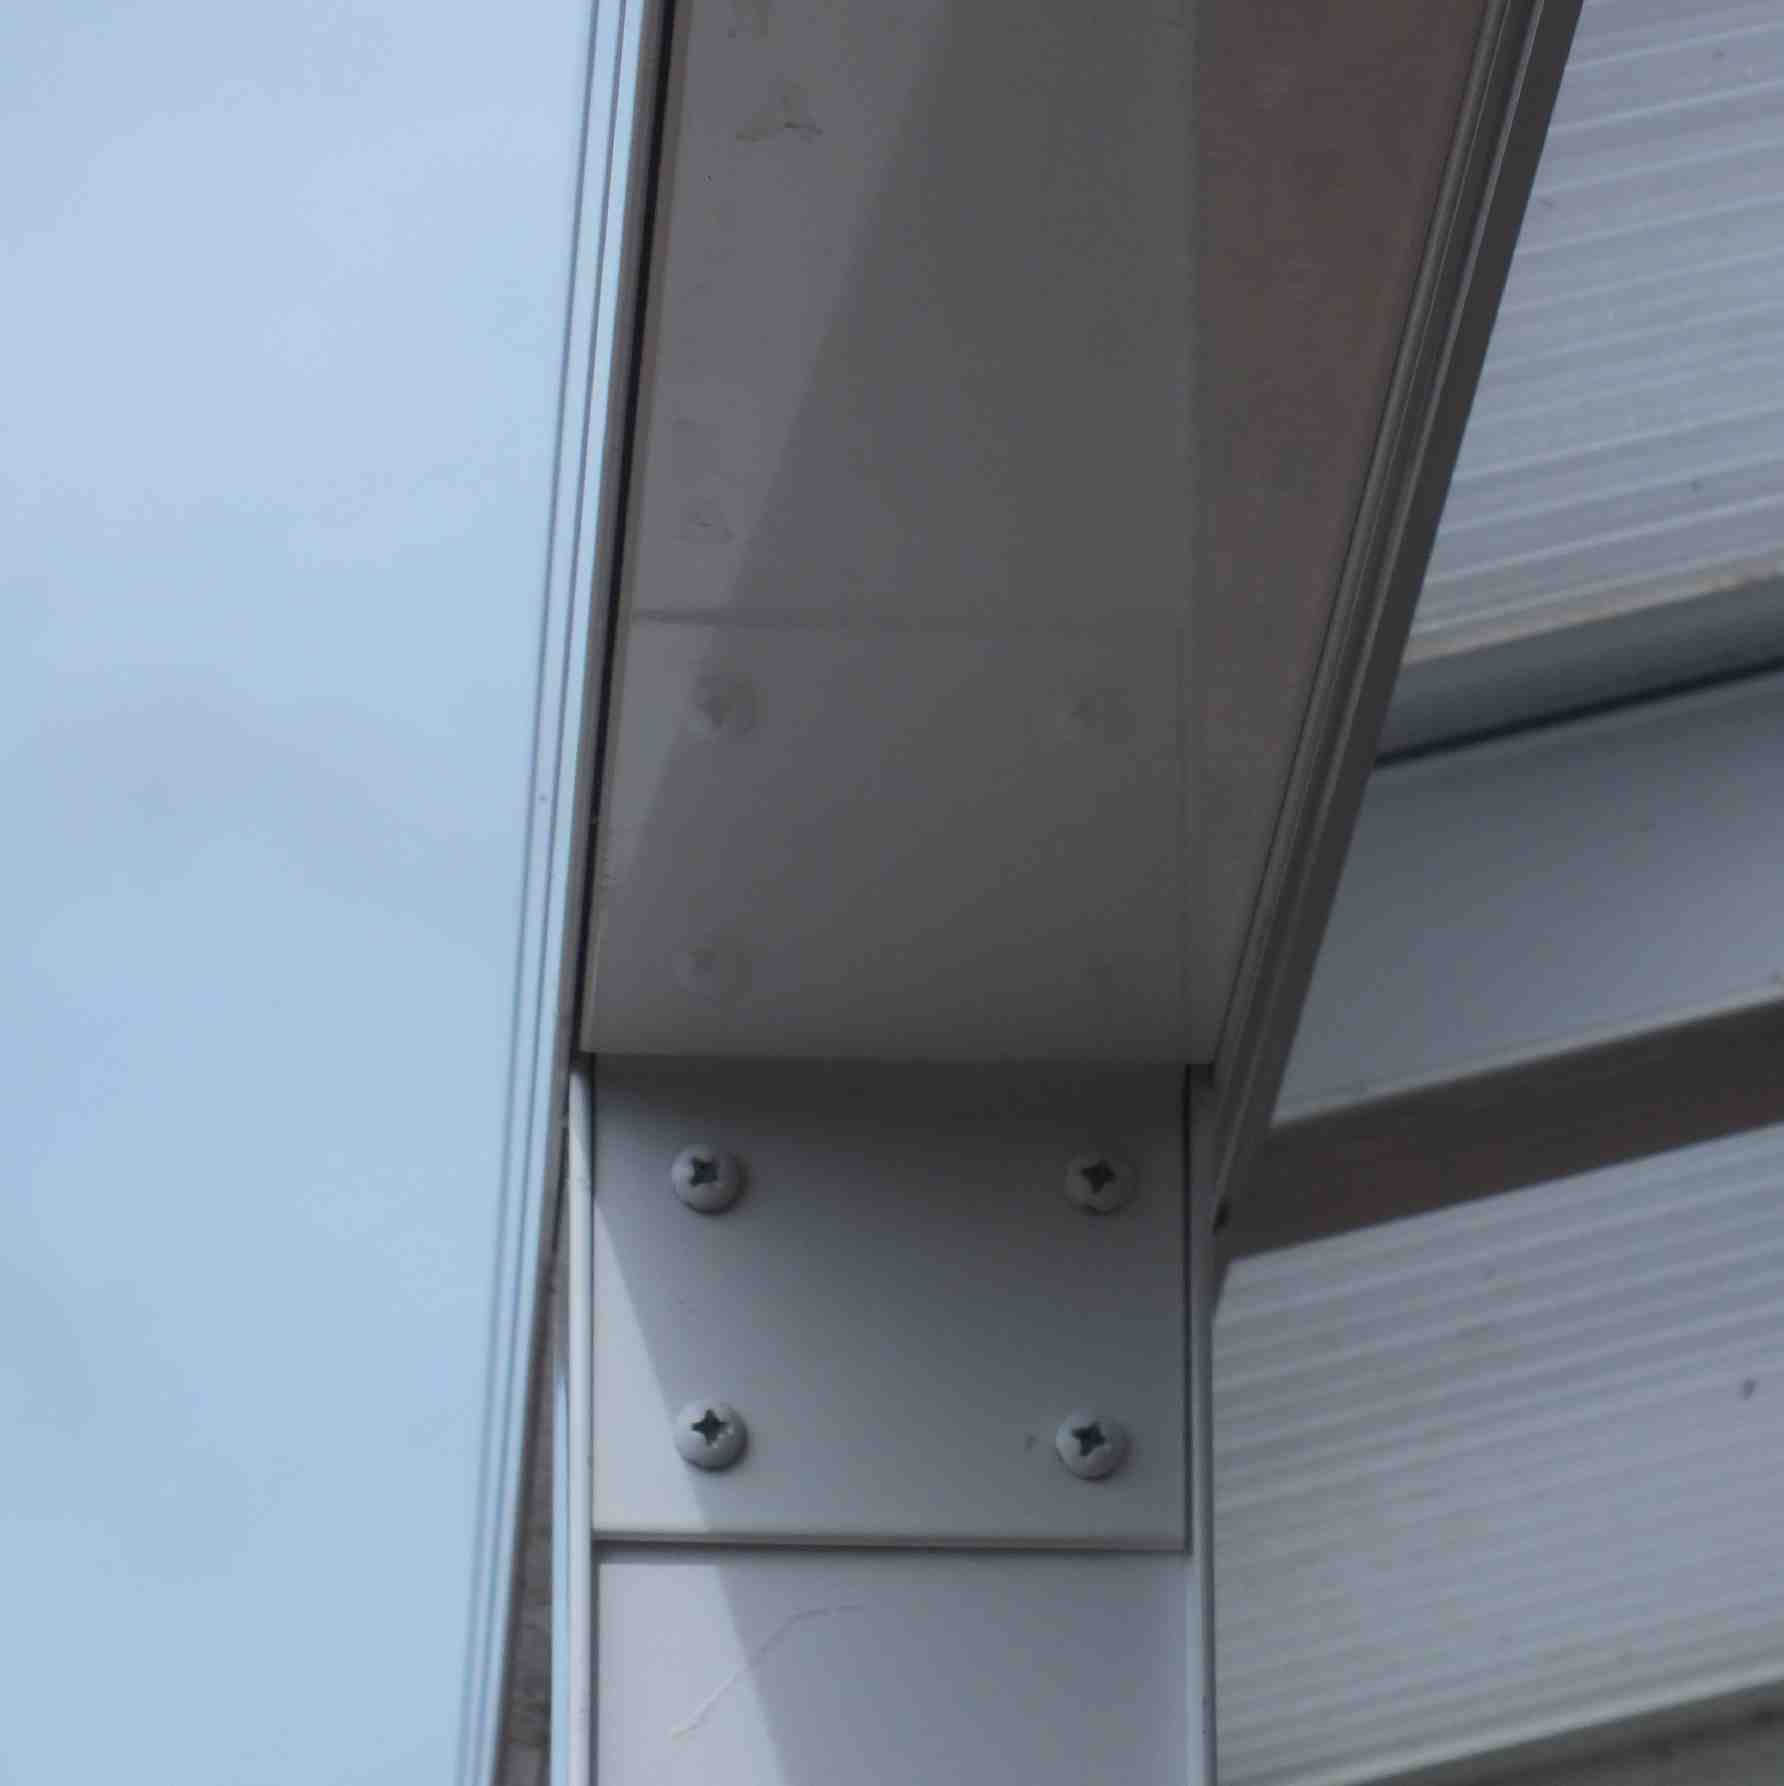 Affordable Omega Verandah with 6mm Glass Clear Plate Polycarbonate Glazing - 2.1m (W) x 2.5m (P), (2) Supporting Posts